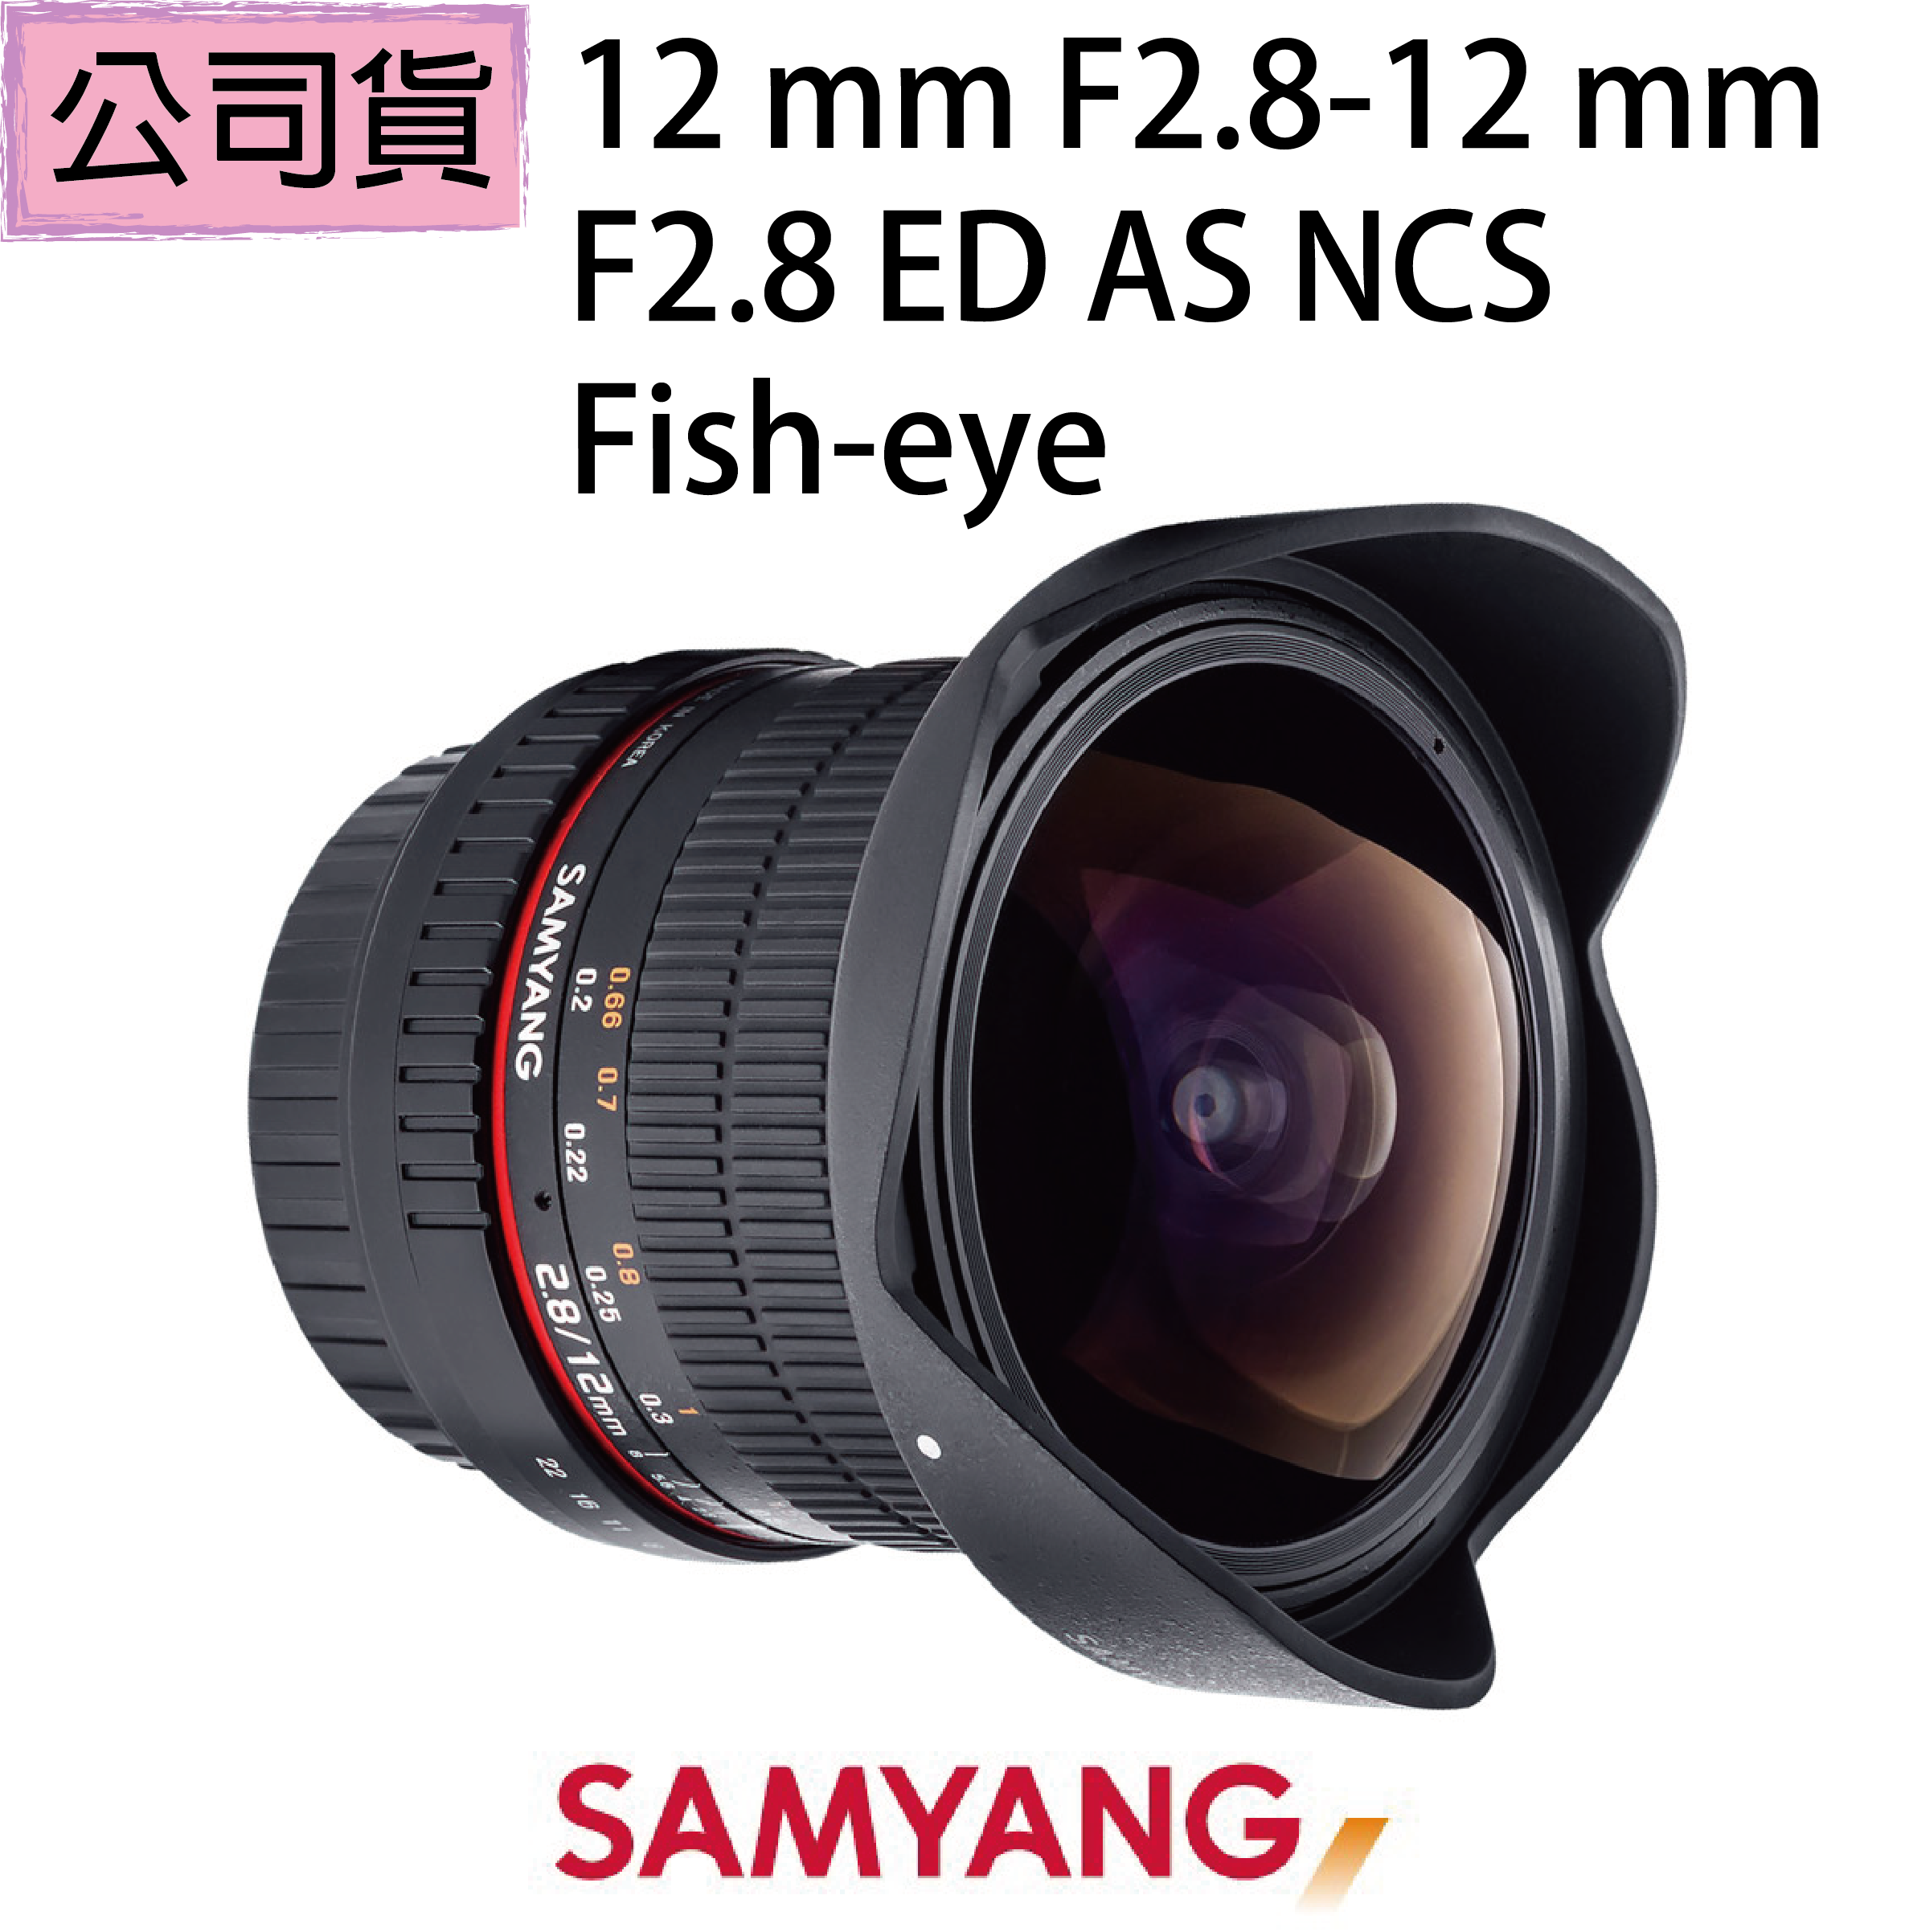 3期0利率【SAMYANG】12 mm F2.8 - 12 mm F2.8 ED AS NCS Fish-eye FOR CANON (公司貨)